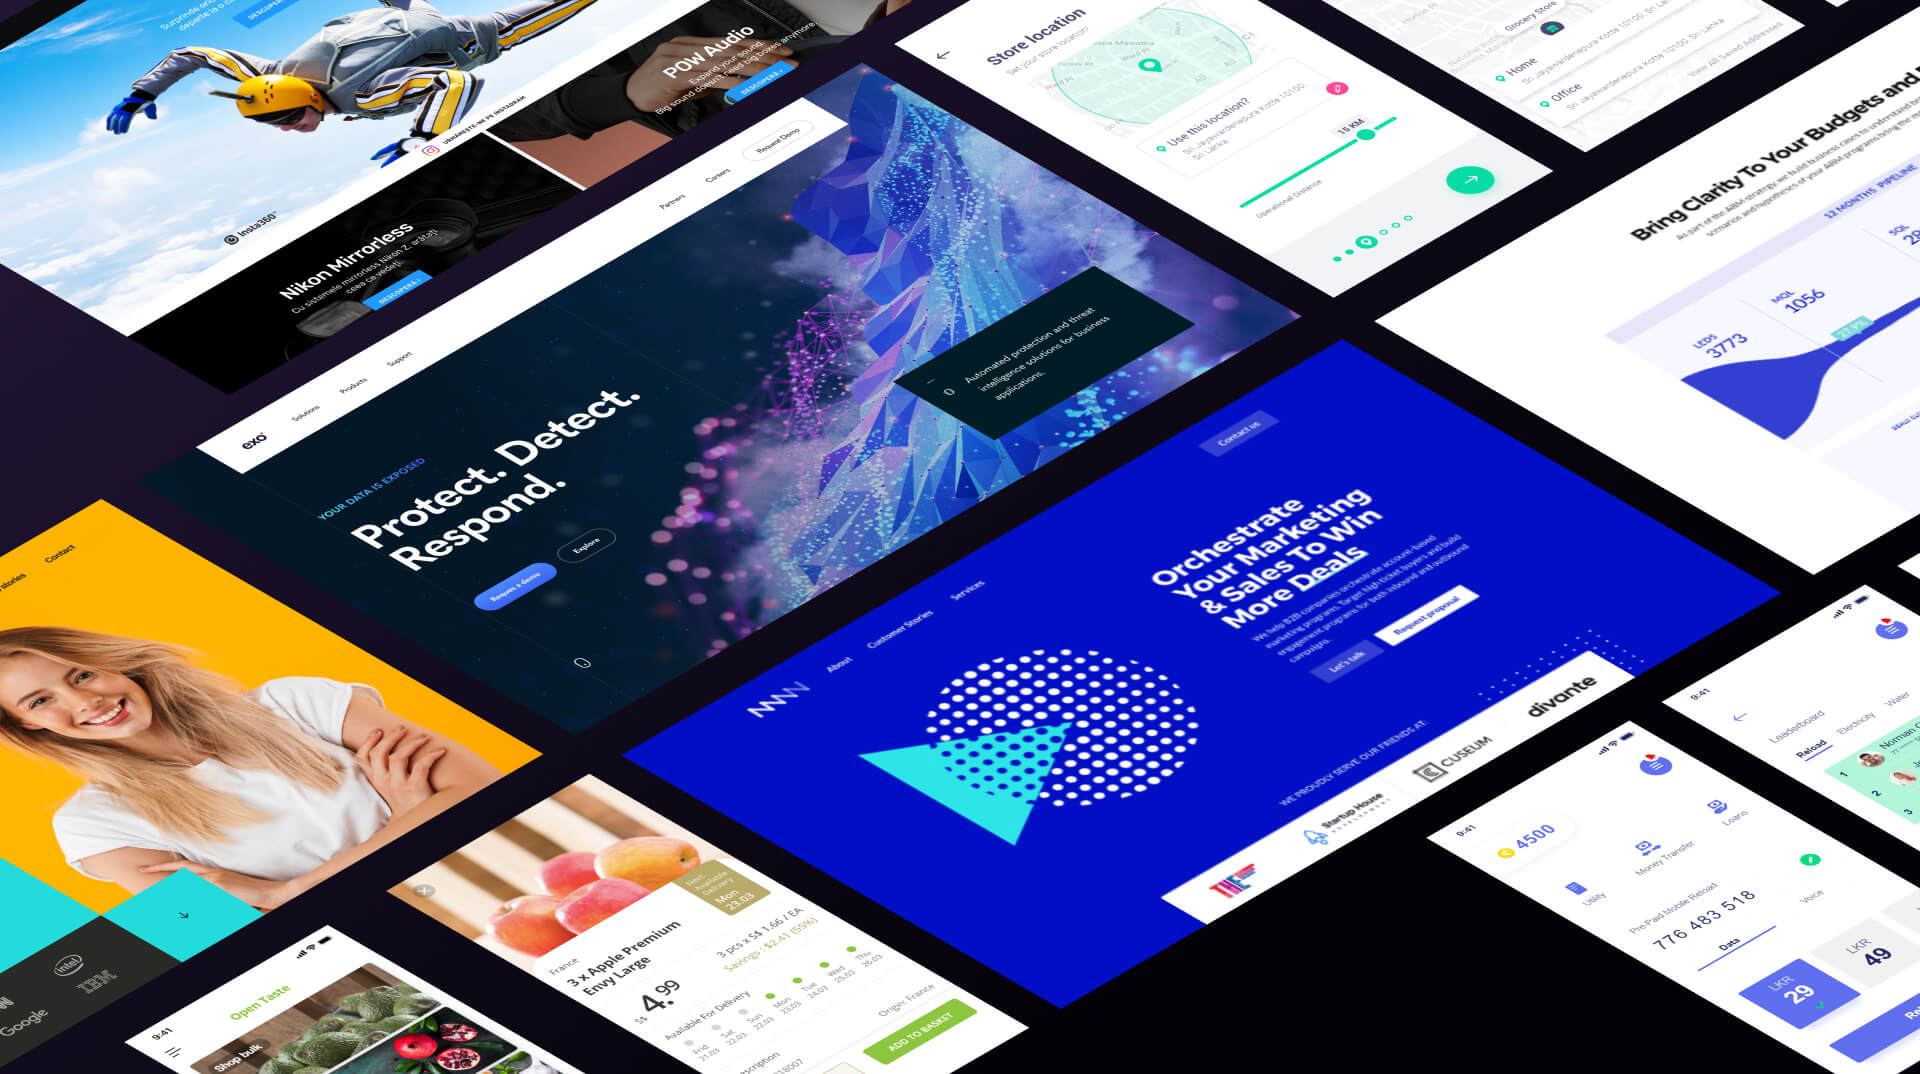 Websites and apps isometric screenshots